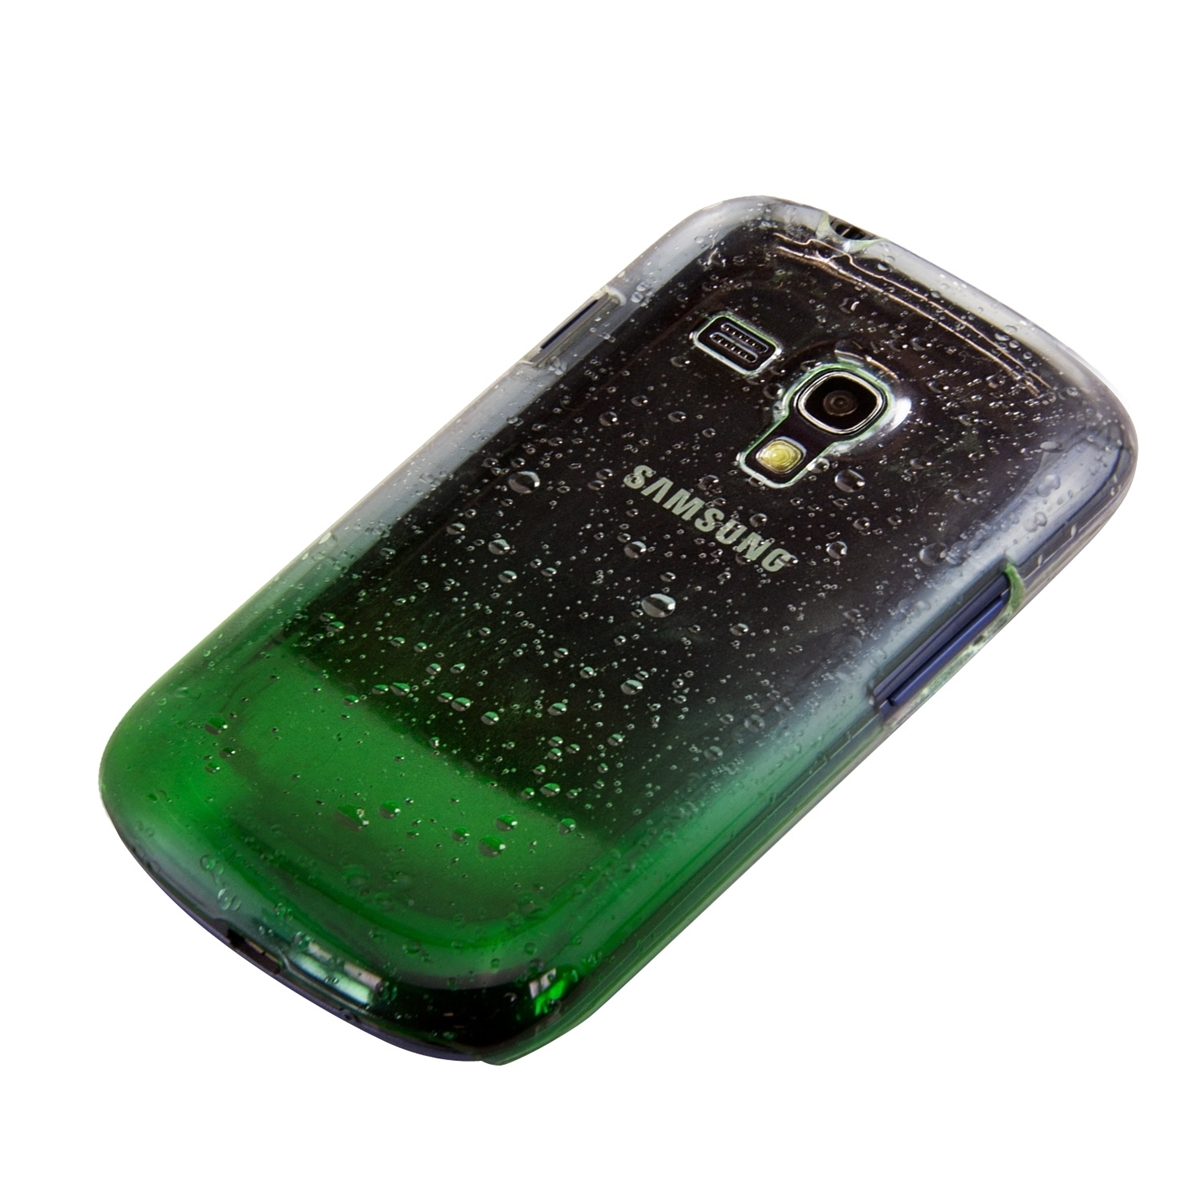 kwmobile-CARCASA-PROTECTORA-PARA-SAMSUNG-GALAXY-S3-MINI-FUNDA-PROTECTORA-MoVIL